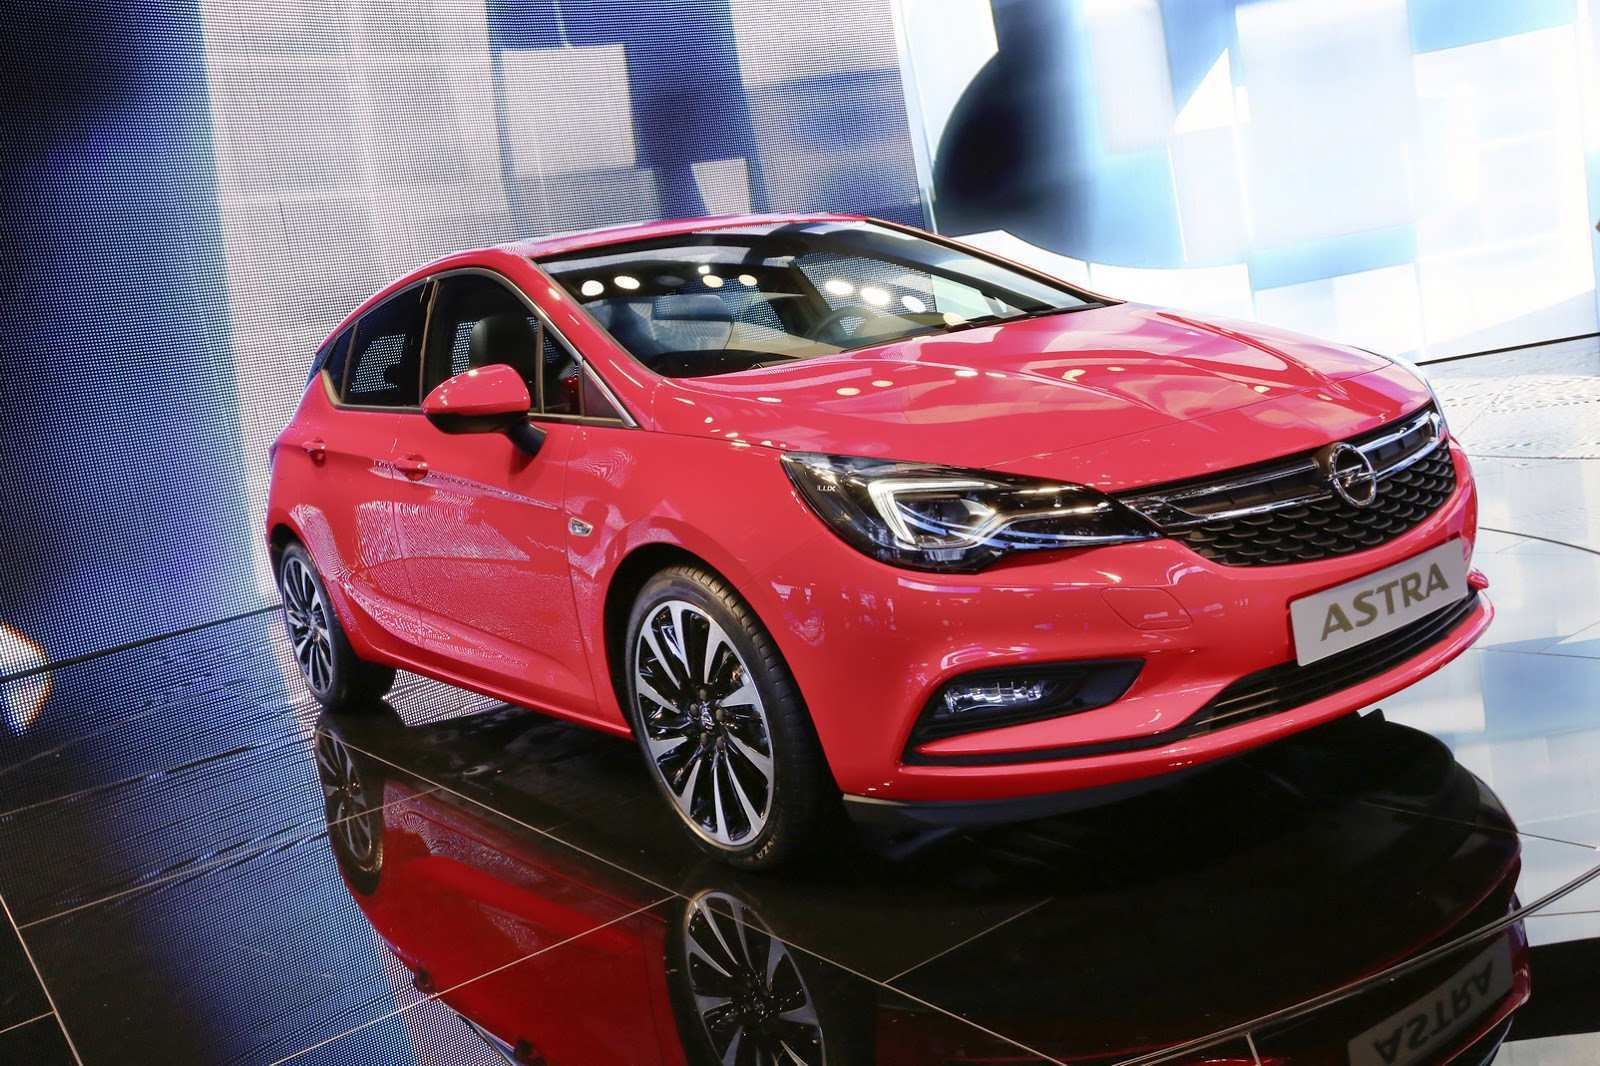 86 Gallery of 2020 New Opel Astra 2018 Configurations with 2020 New Opel Astra 2018